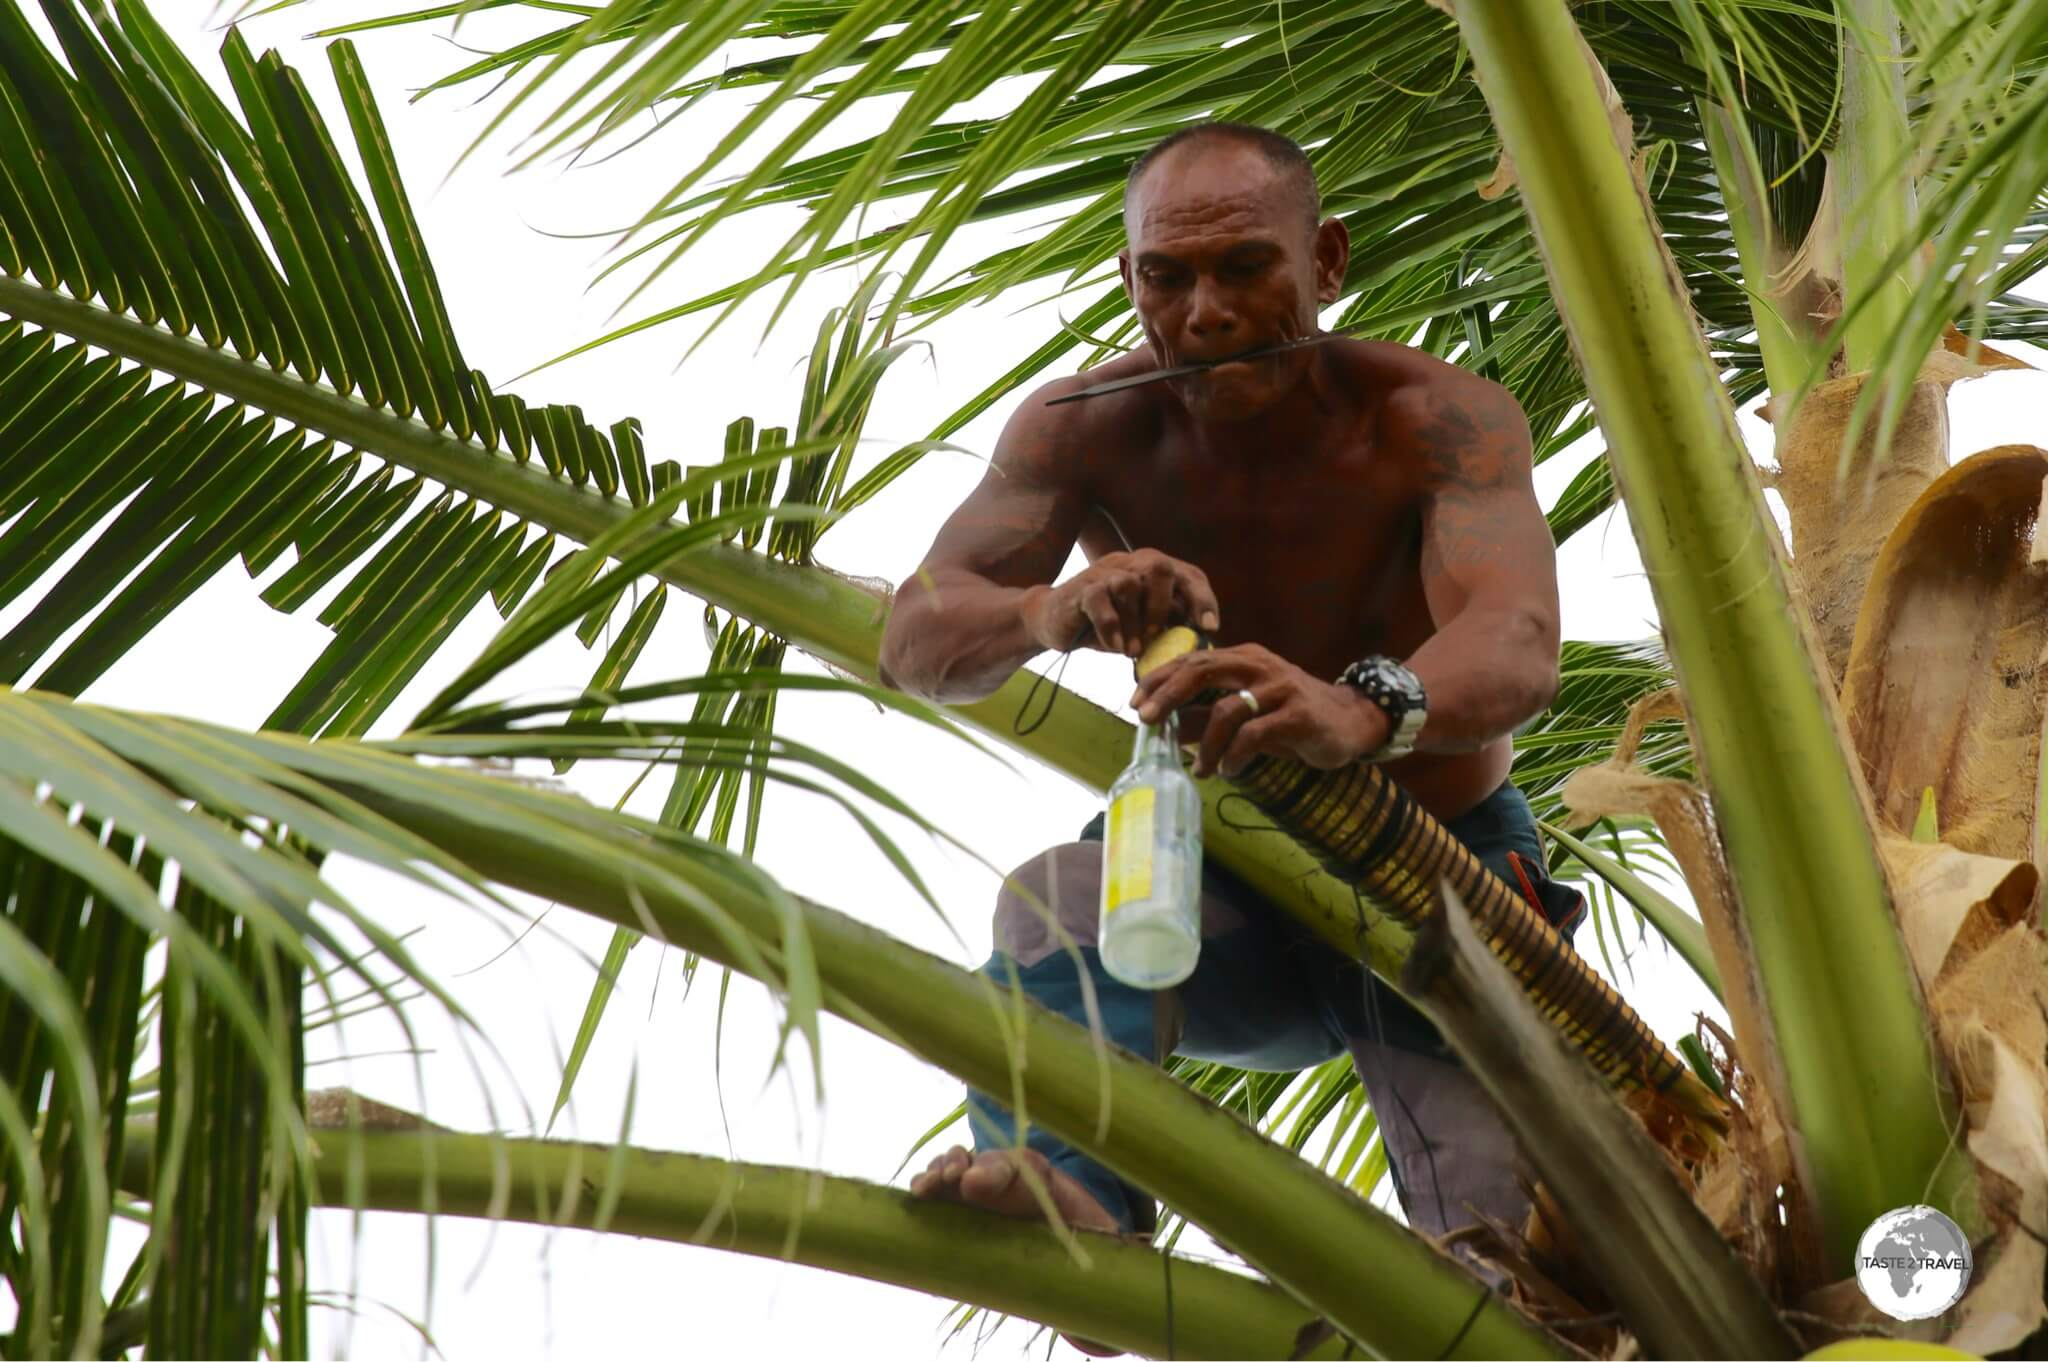 A Tuvaluan 'tapper' preparing to collect sap for his next batch of Coconut Toddy.